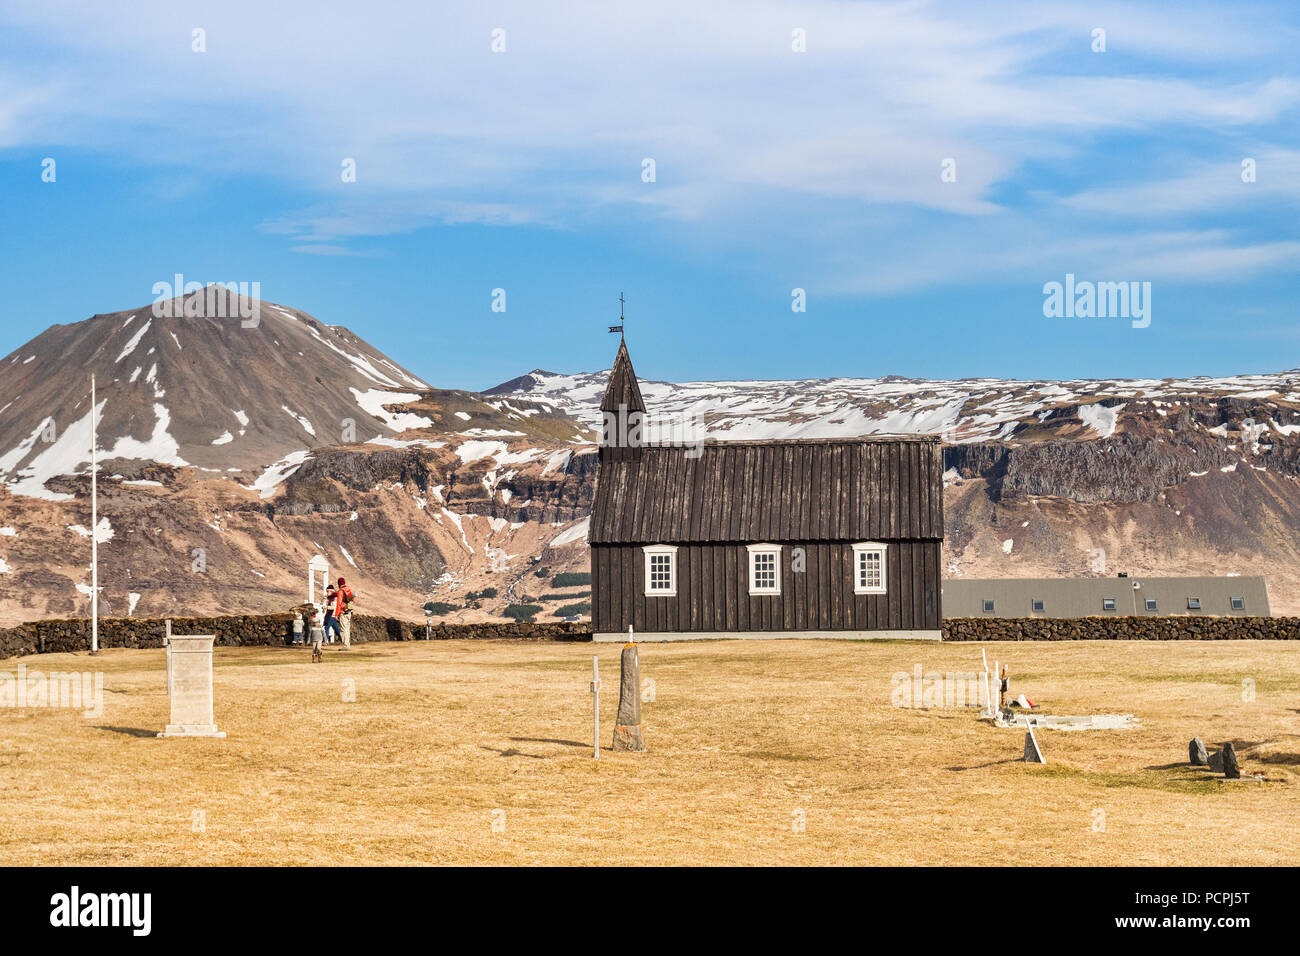 16 April 2018: Budir, Snaefellsnes Peninsula, West Iceland - The Little Black Church, and a family of tourists visiting. - Stock Image